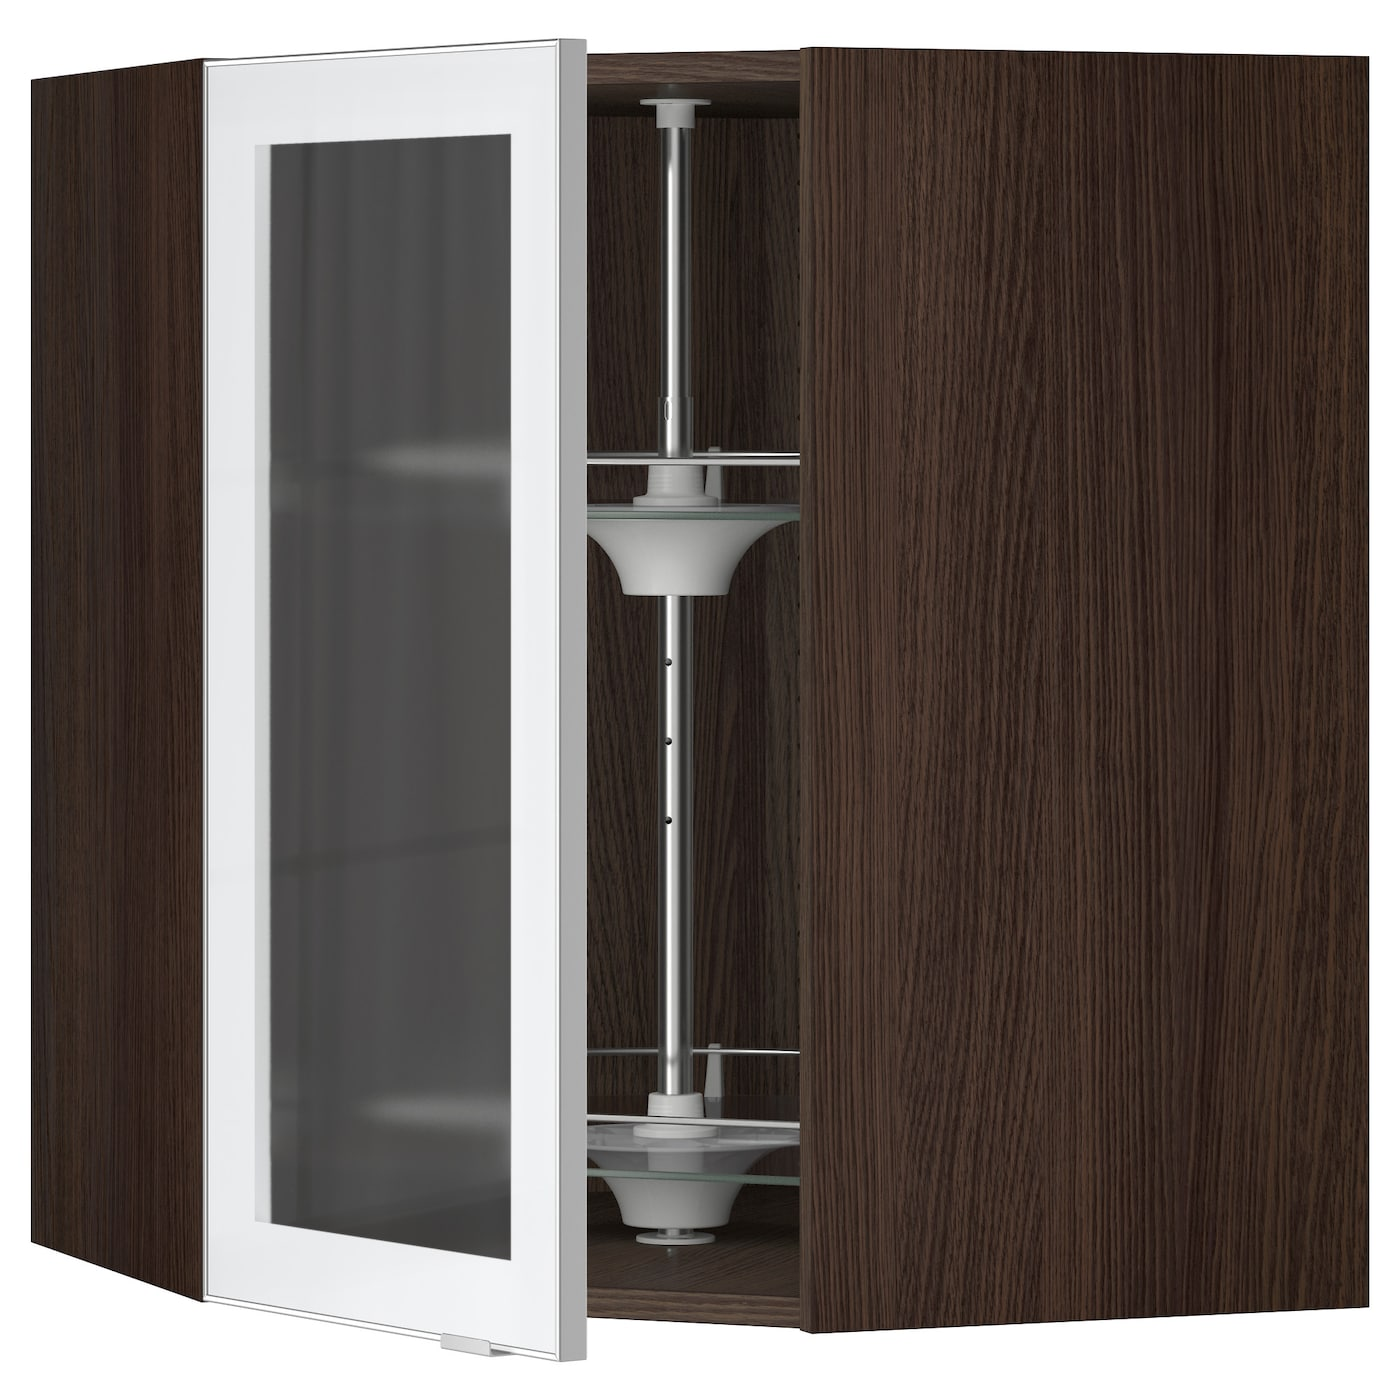 Sektion Corner Wall Cab Carousel Glass Door Brown Jutis Frosted Glass